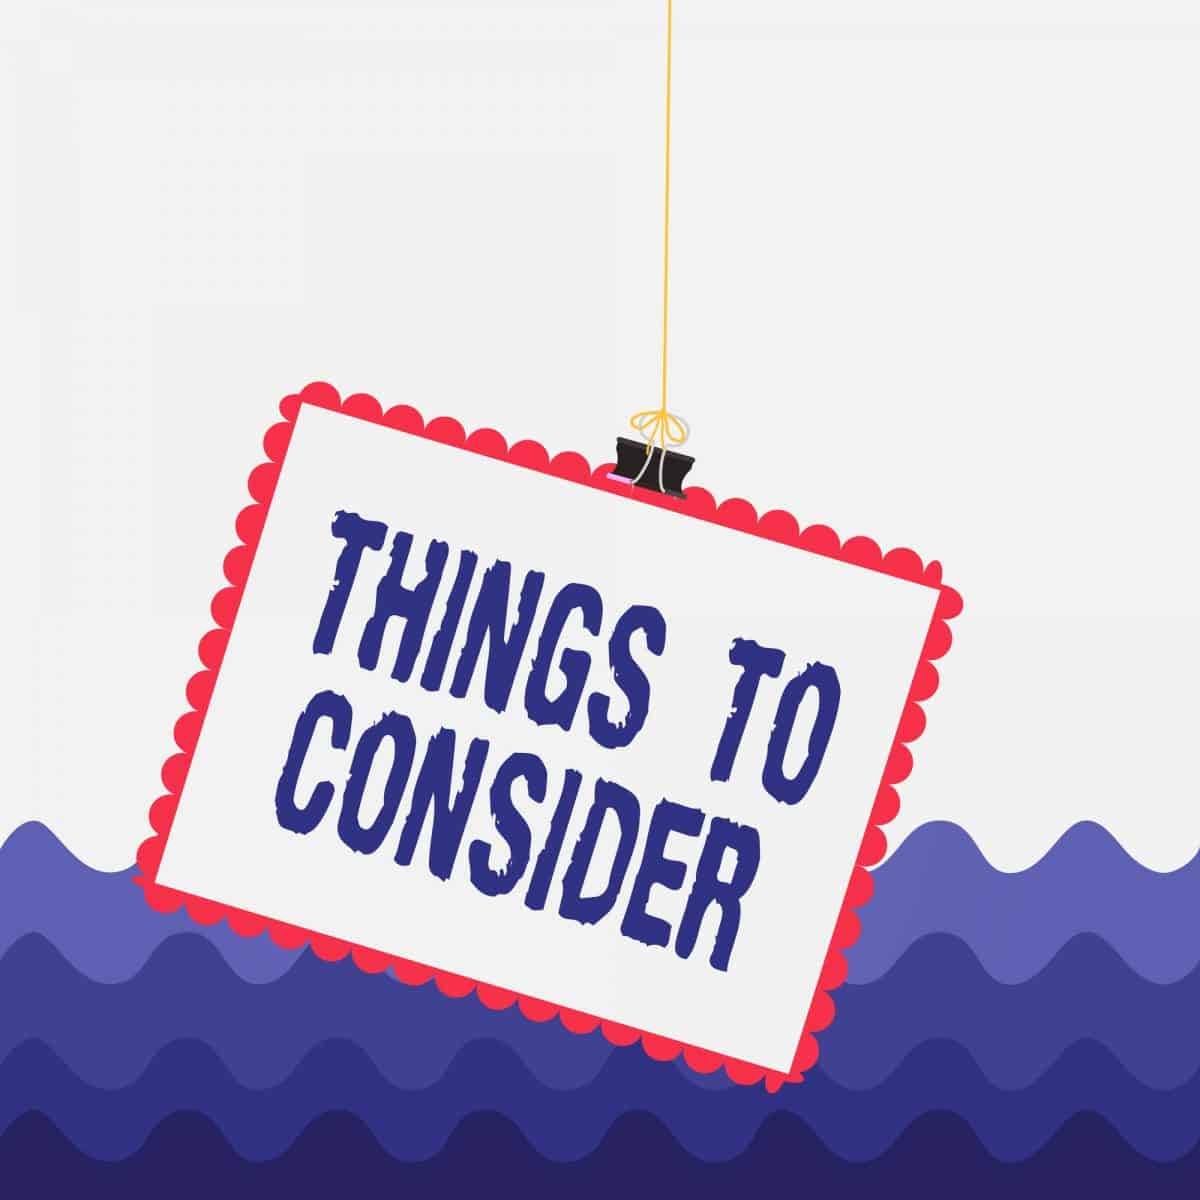 graphic of a sign saying 'Things to consider'